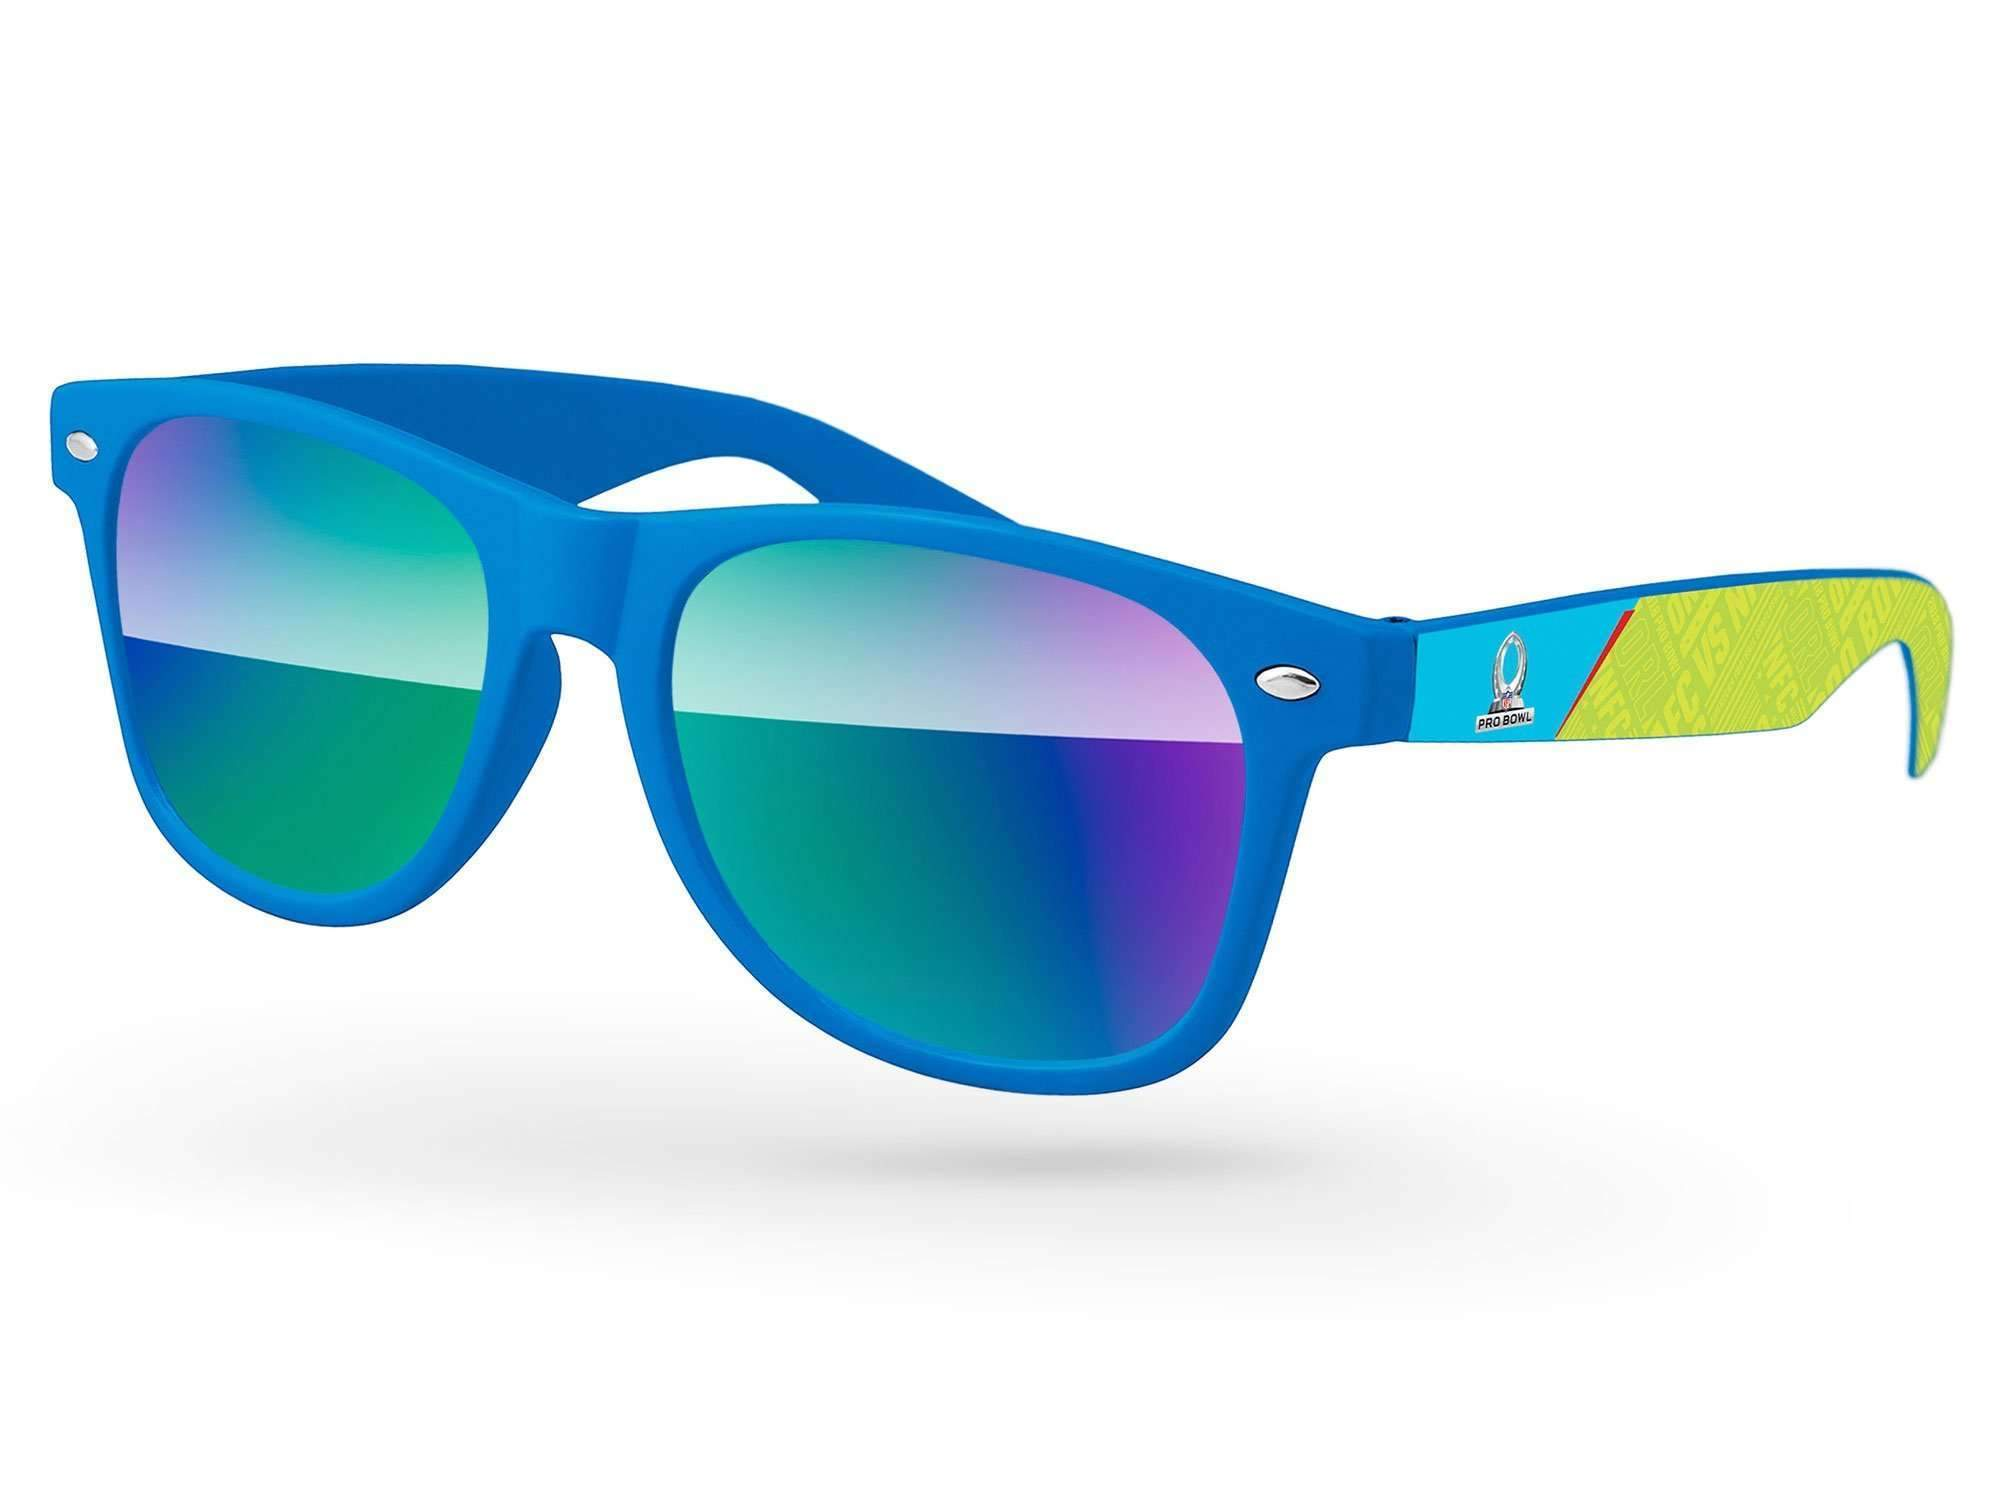 RM050 - Retro Mirror Promotional Sunglasses w/ full-color arms heat transfer